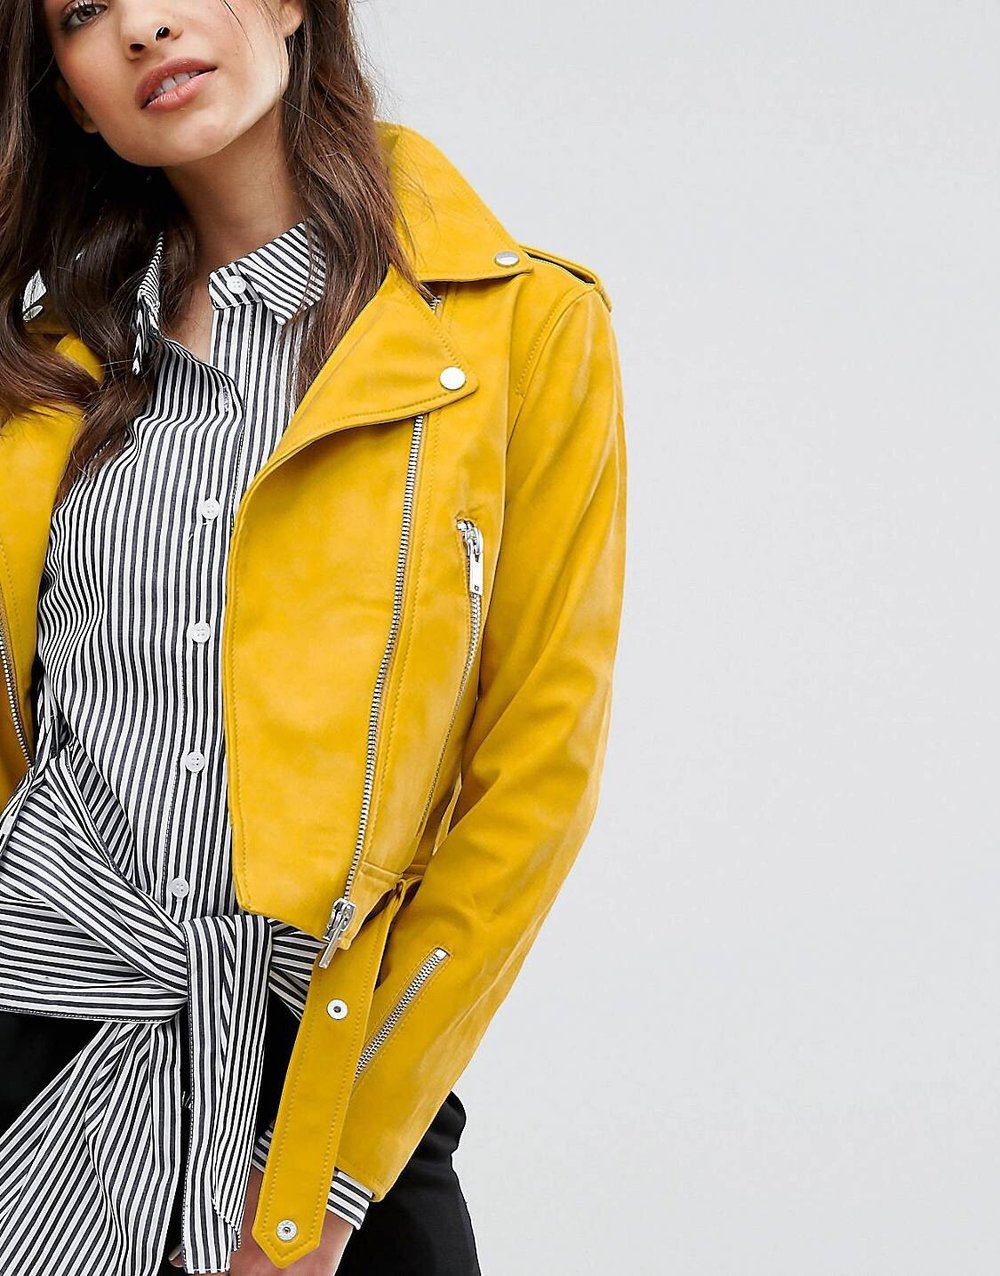 - I hate being in the wrong type of outerwear when I rains, e.g. a blazer or sometimes even a duster. I prefer something the rain can just roll right off.Throw a leather jacket over my hoody and we good.